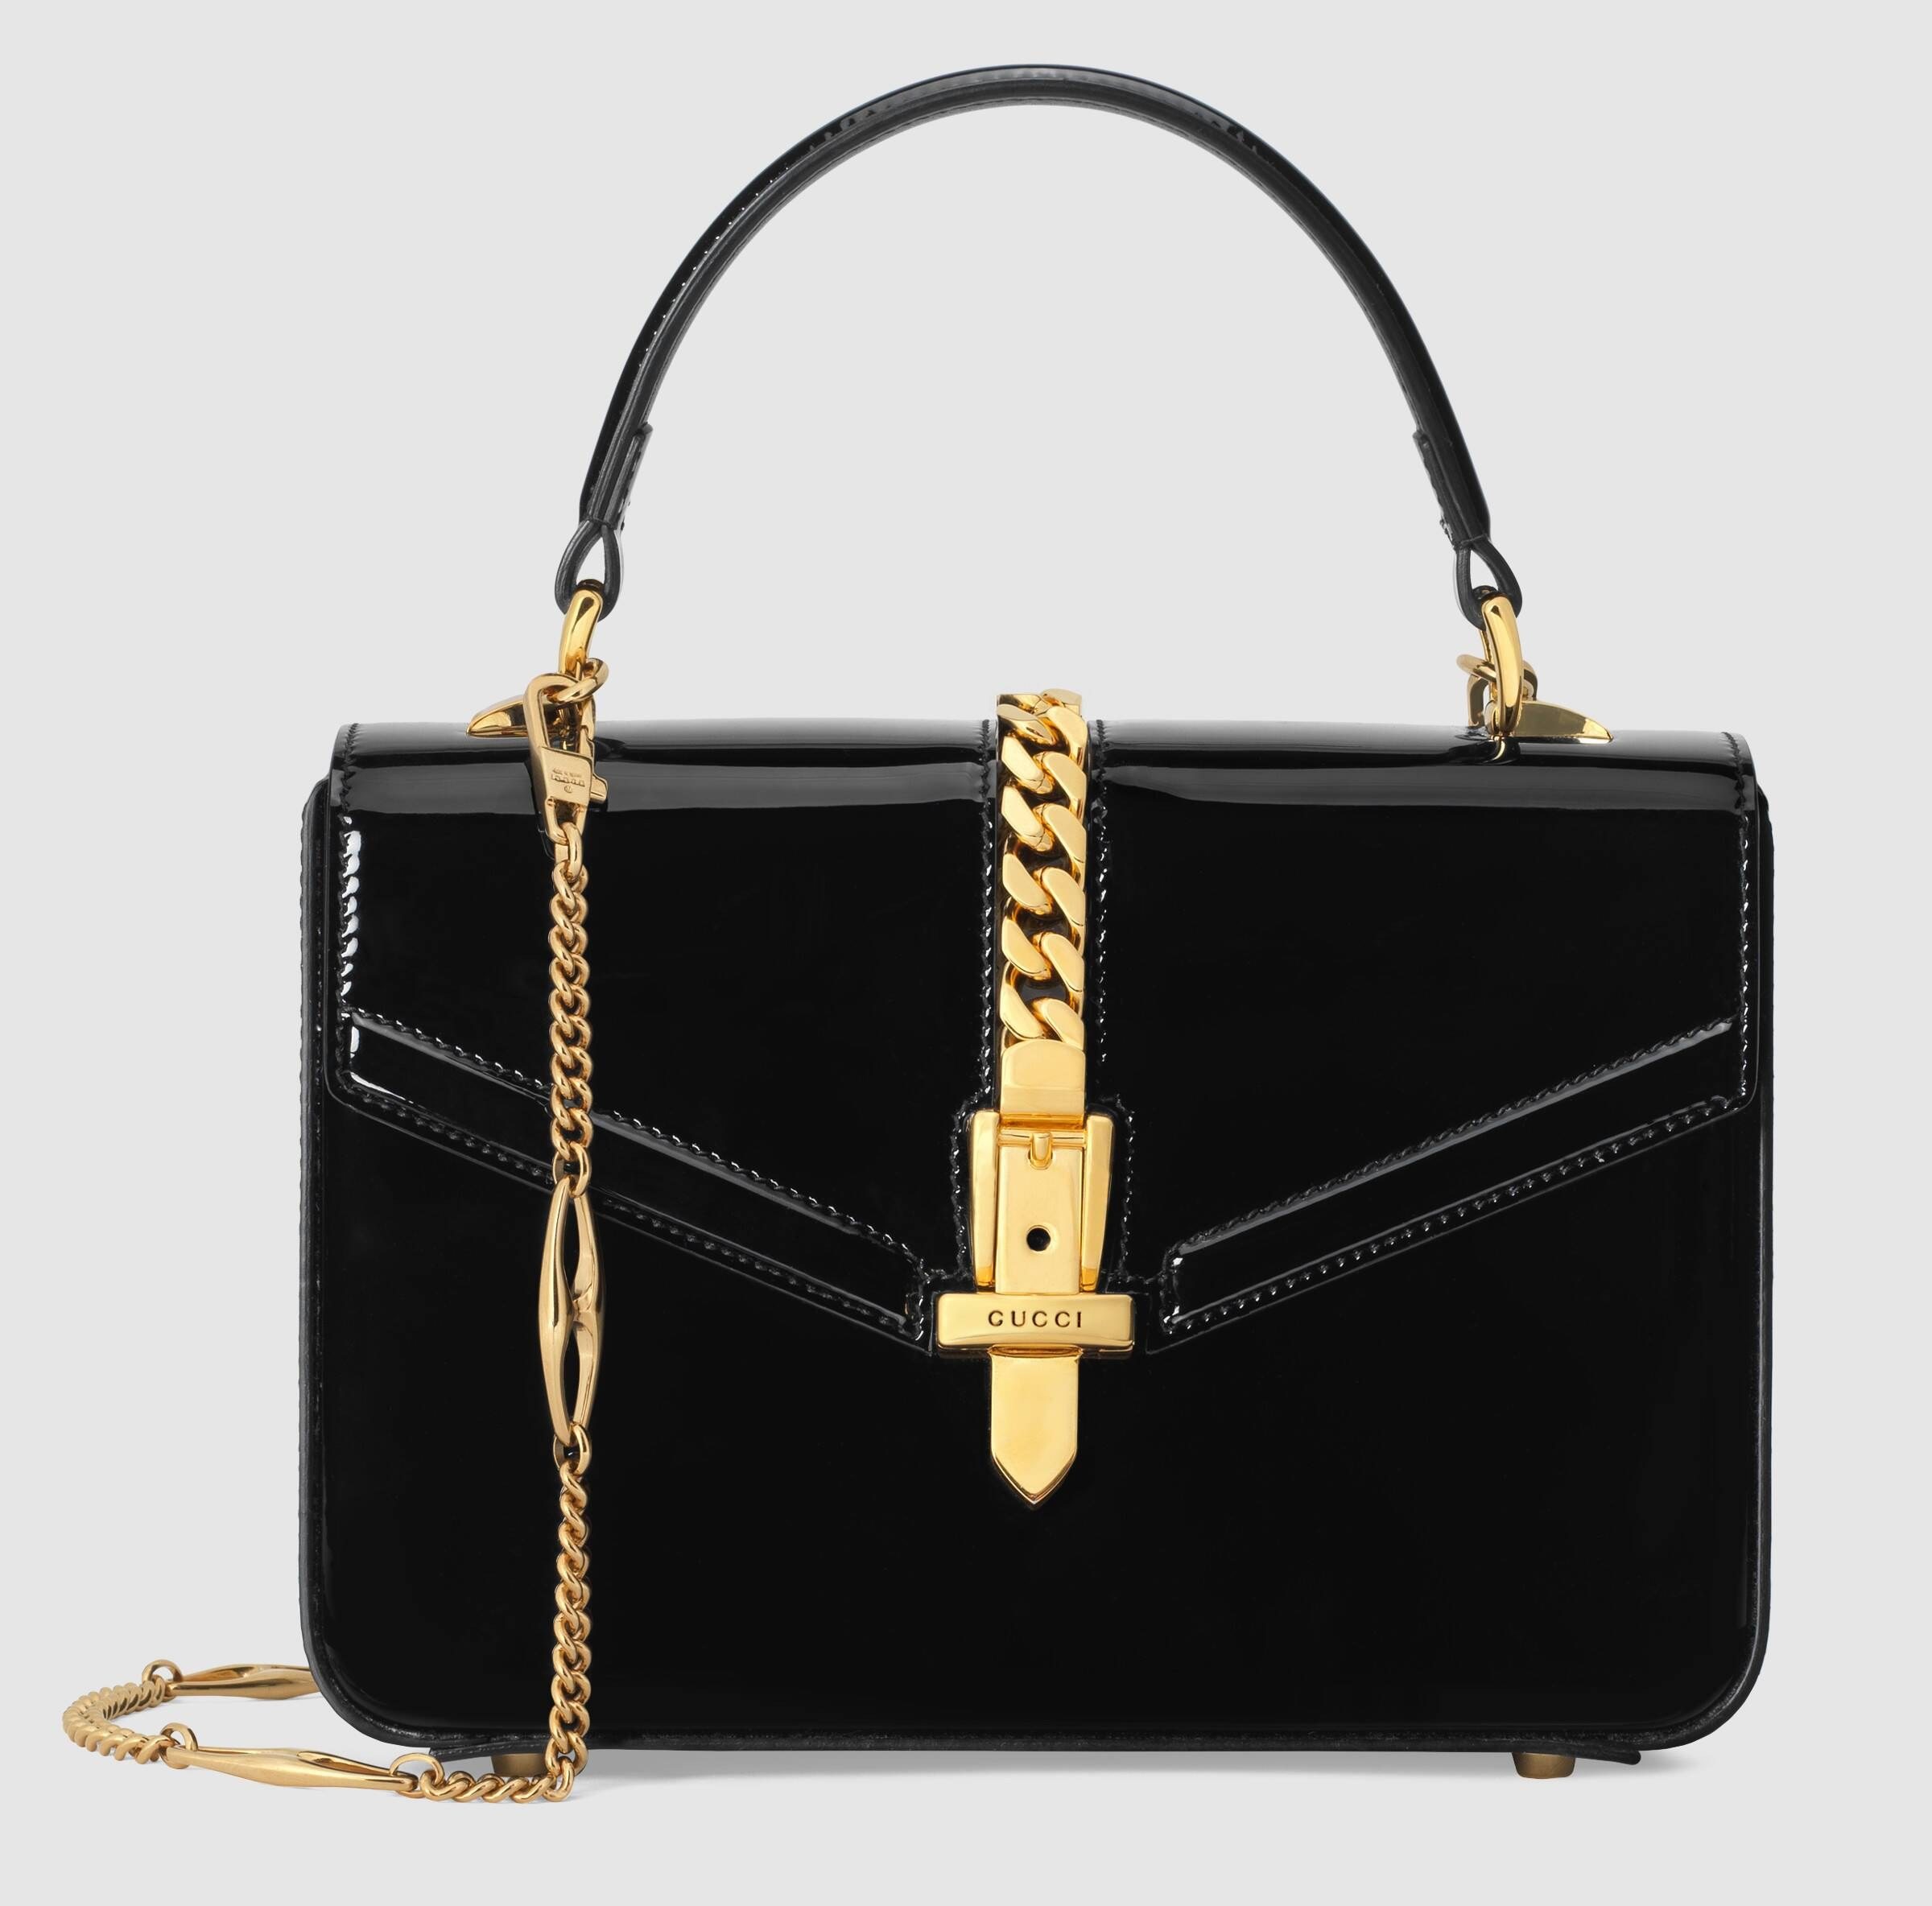 Gucci Sylvie 1969 Patent Leather Mini Top Handle Bag 589479 Black